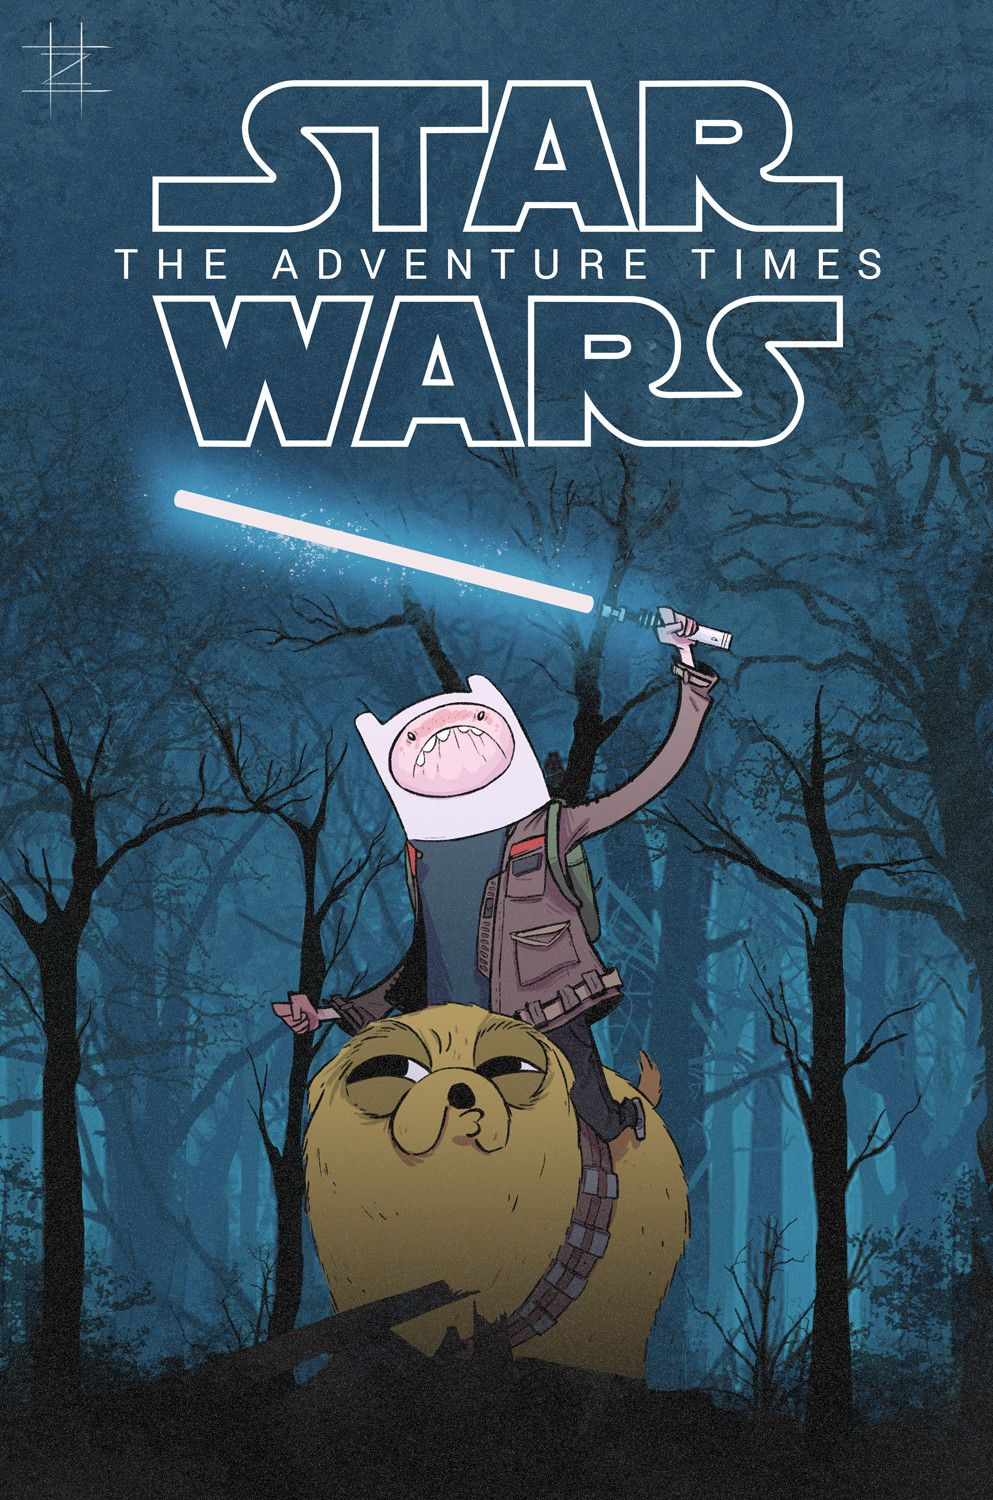 Star Wars The Adventure Times Jonatas Zavaski Agnello Adventure Time Characters Adventure Time Wallpaper Adventure Time